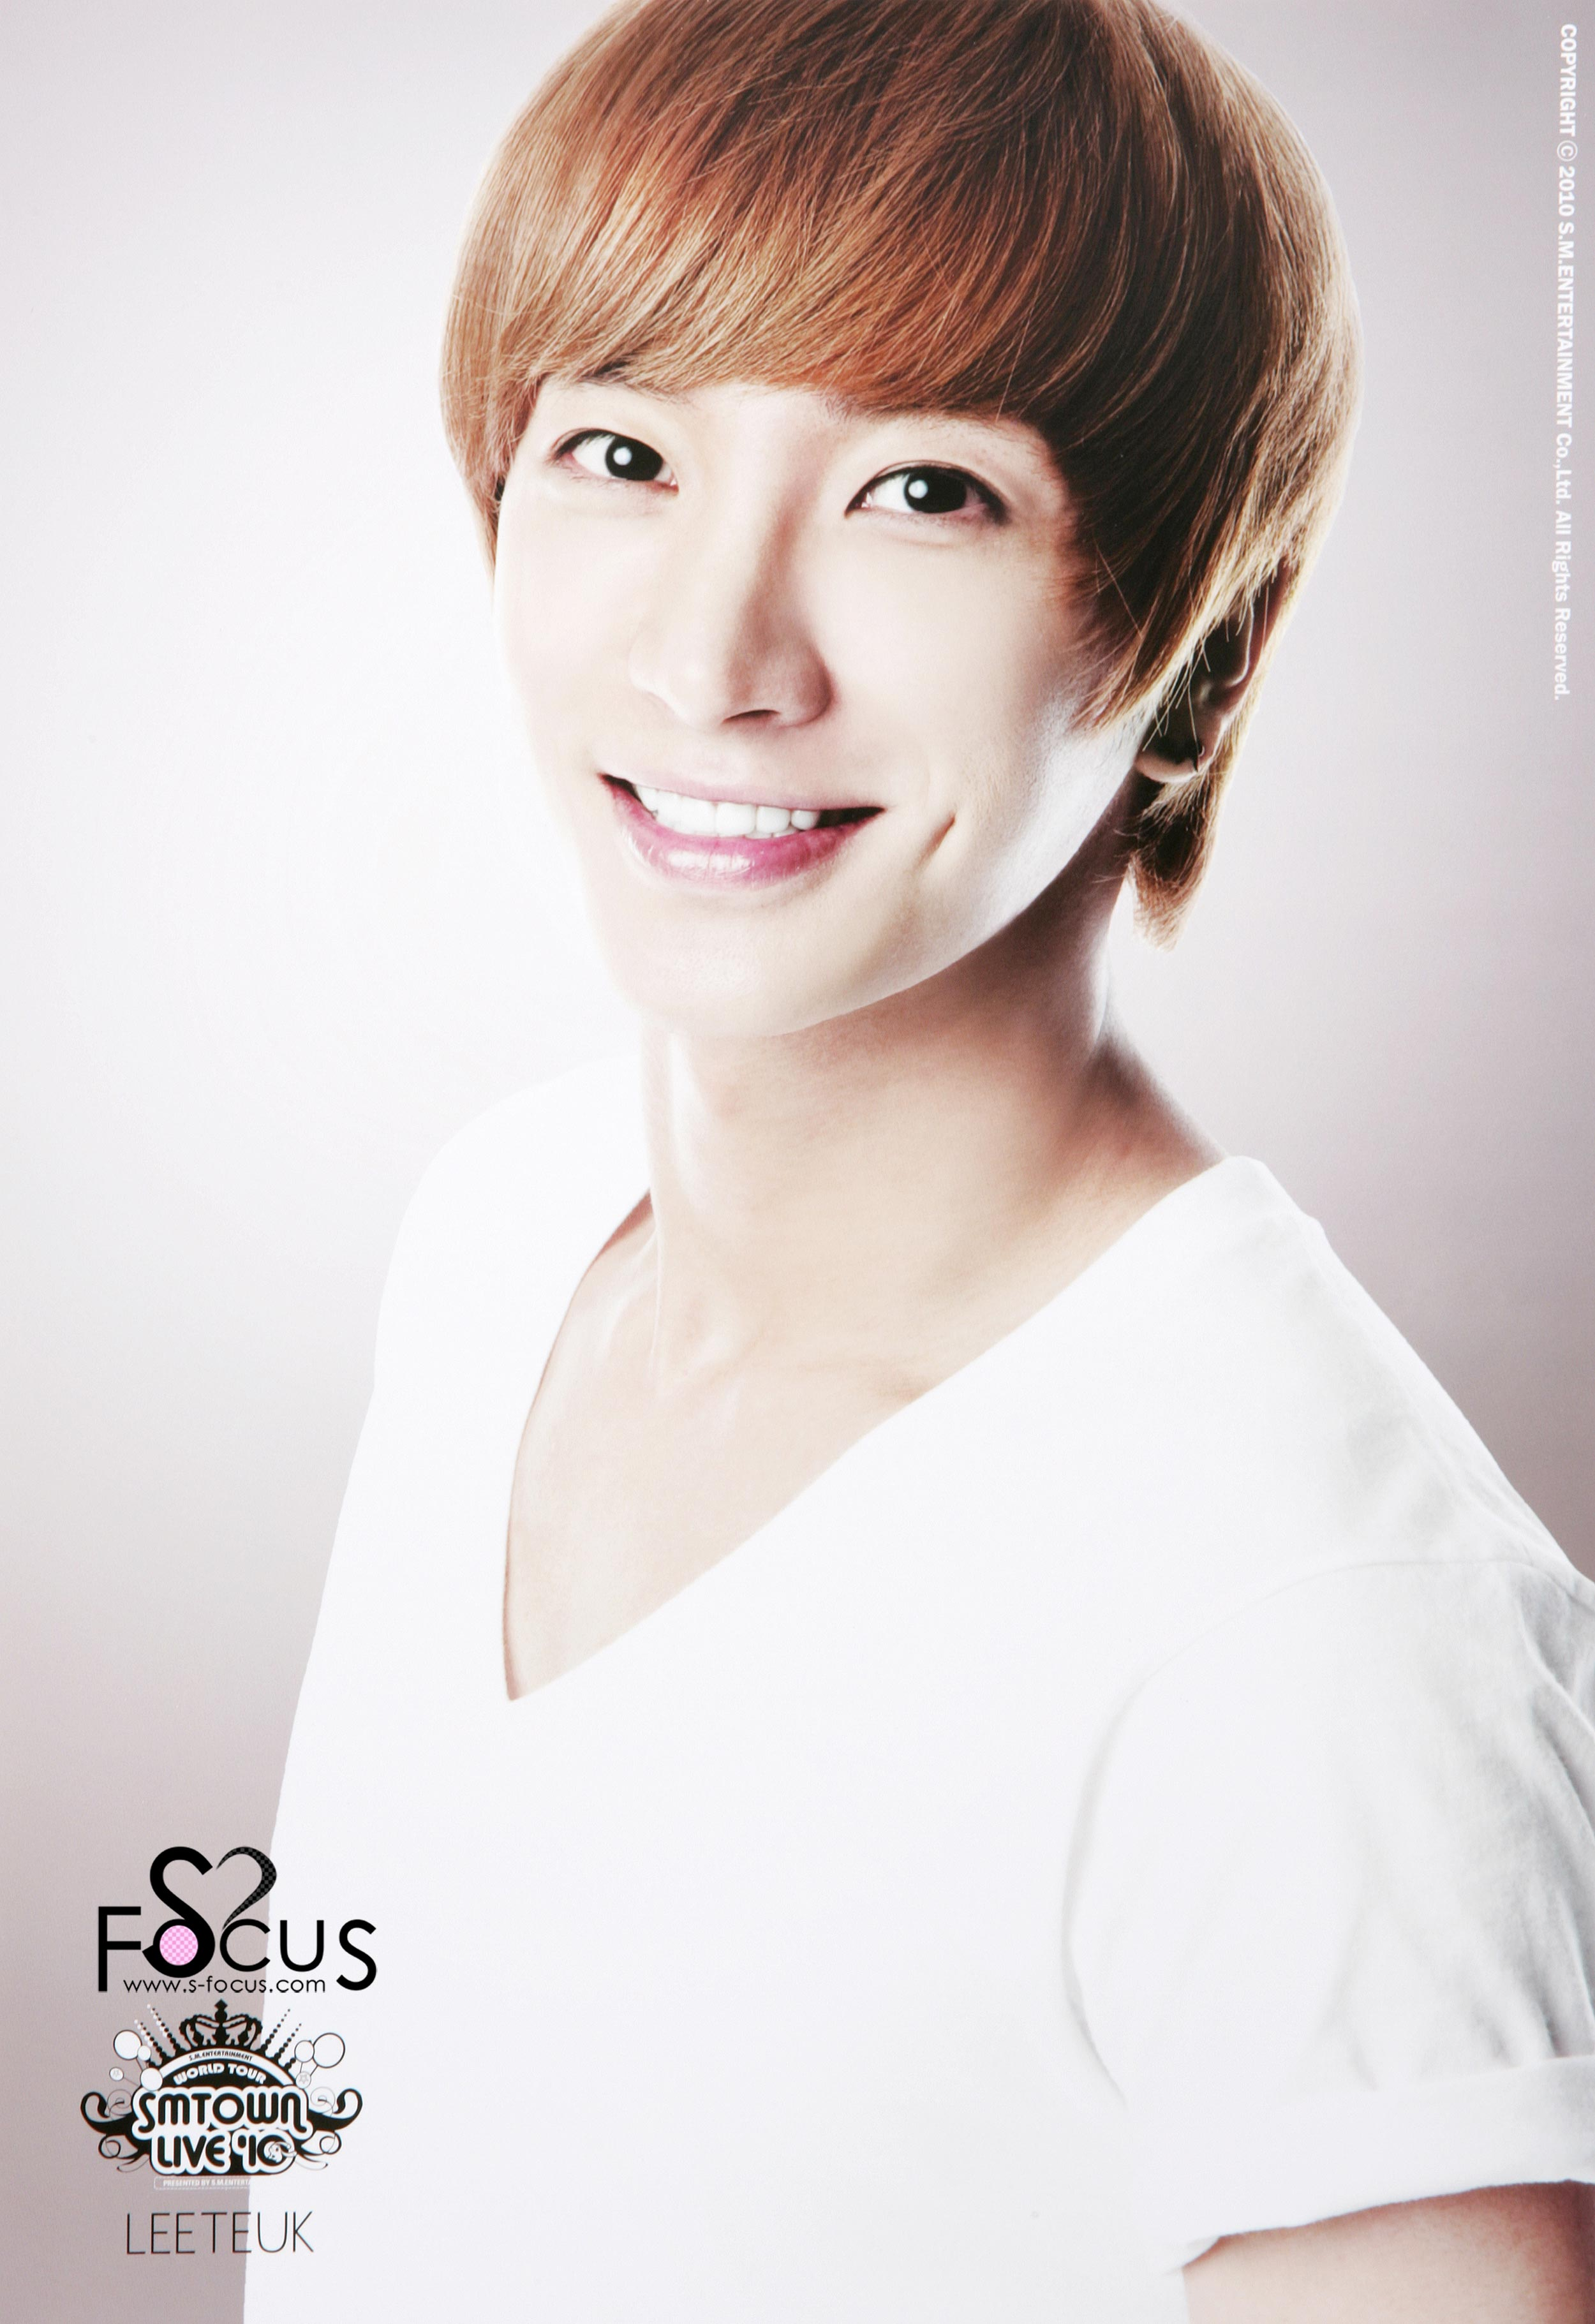 Leeteuk Profile / Biography